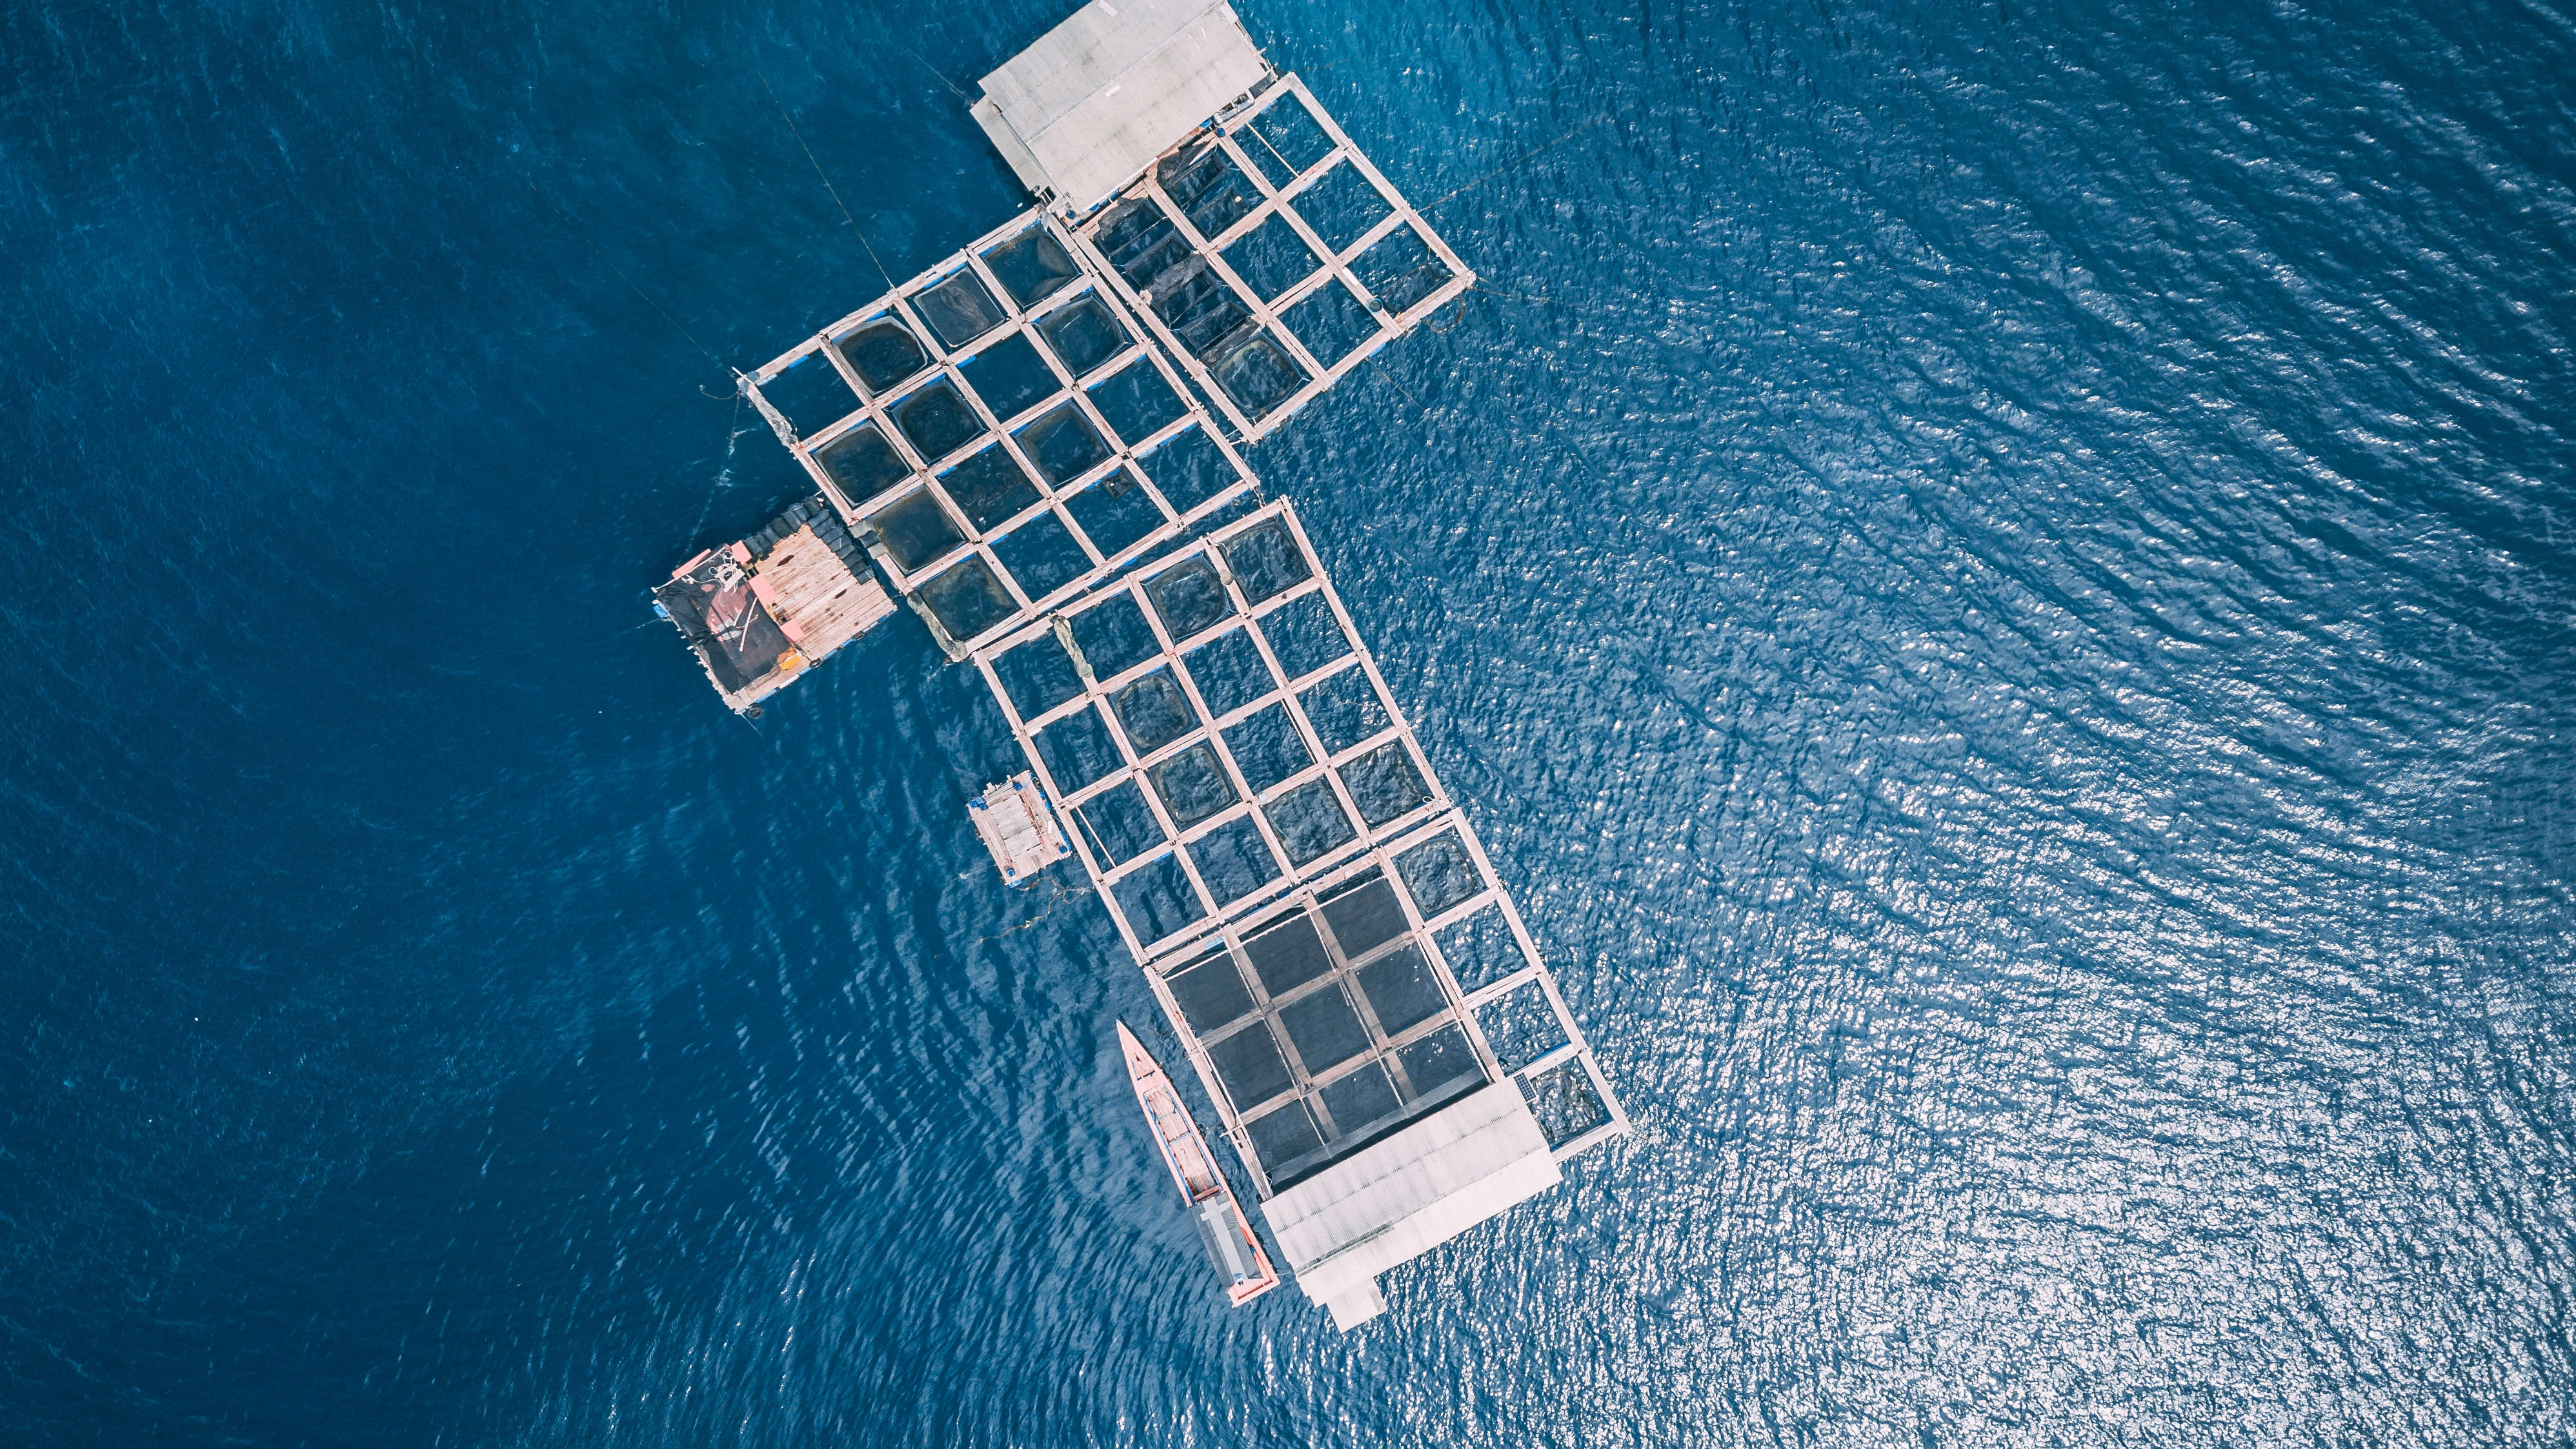 AQUAEXCEL3.0 project launched to further boost European aquaculture